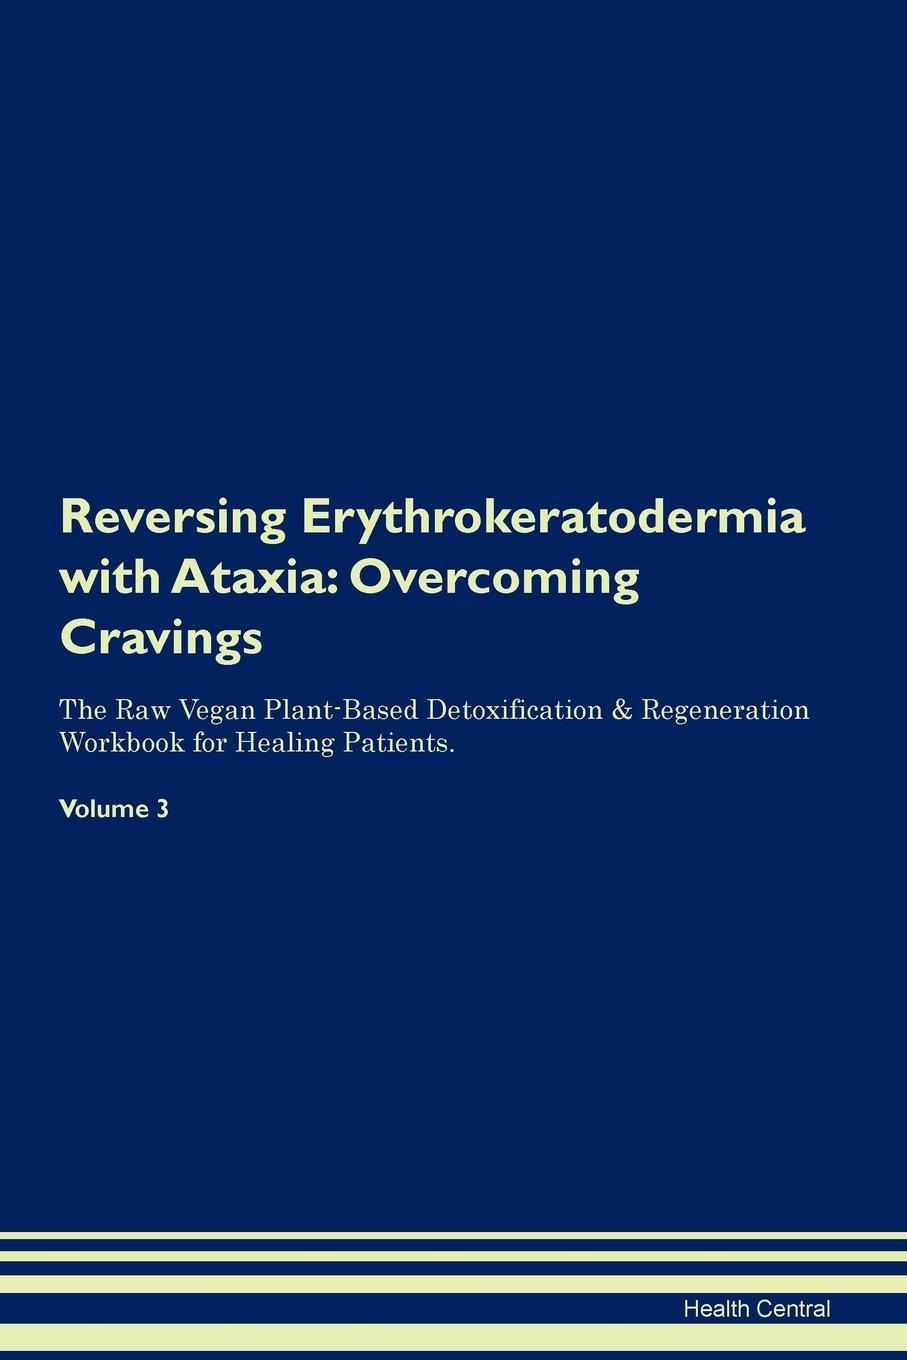 Фото - Health Central Reversing Erythrokeratodermia with Ataxia. Overcoming Cravings The Raw Vegan Plant-Based Detoxification & Regeneration Workbook for Healing Patients. Volume 3 health central reversing spinocerebellar ataxia overcoming cravings the raw vegan plant based detoxification